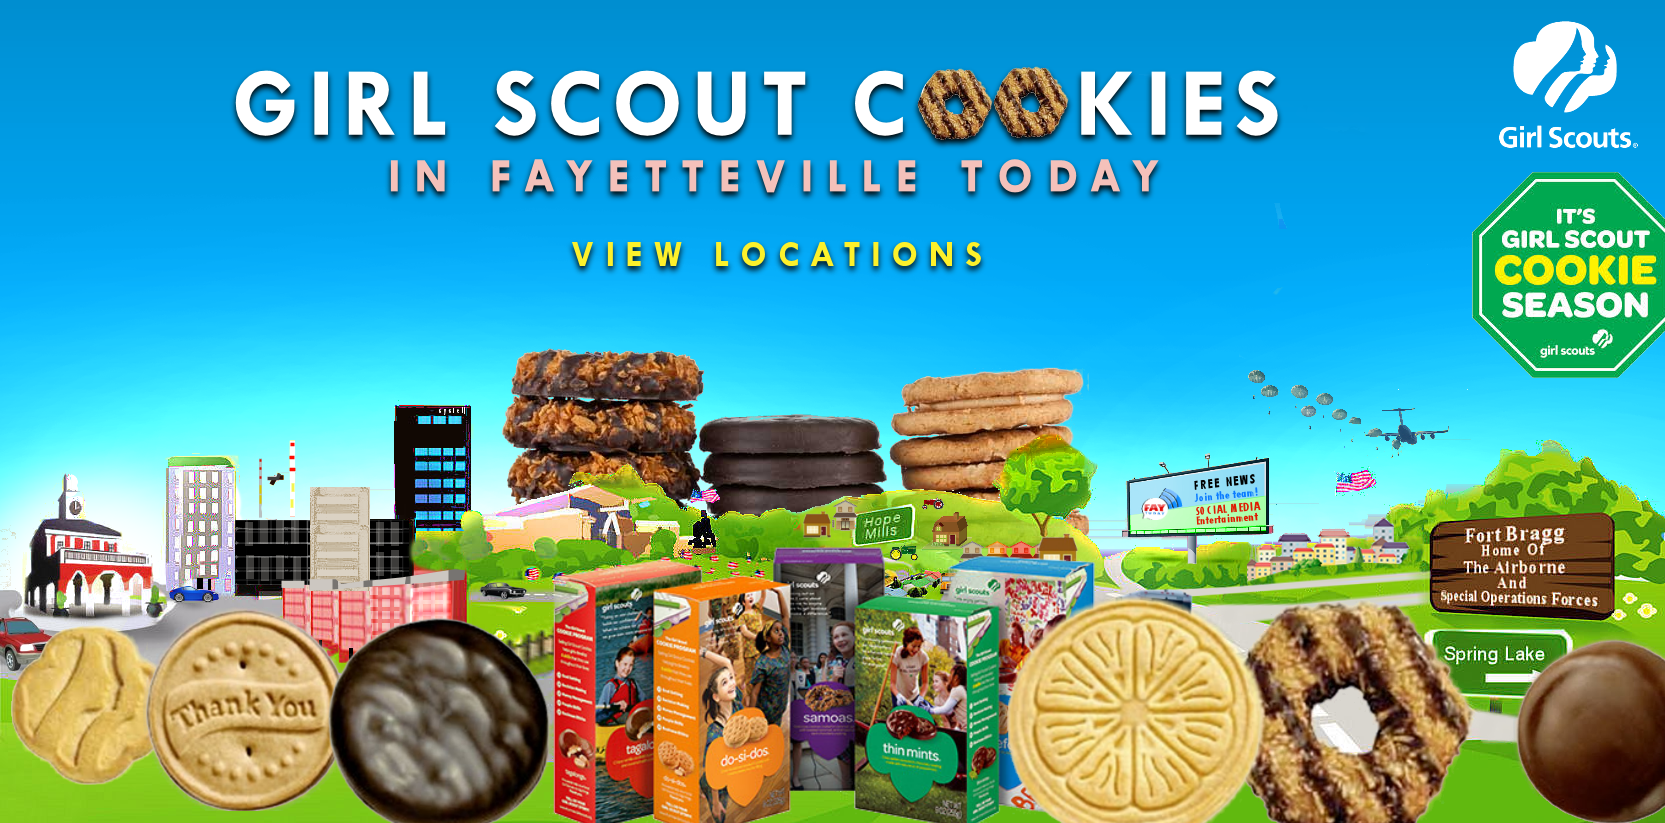 find girl scout cookies near fayetteville nc on feb 1st